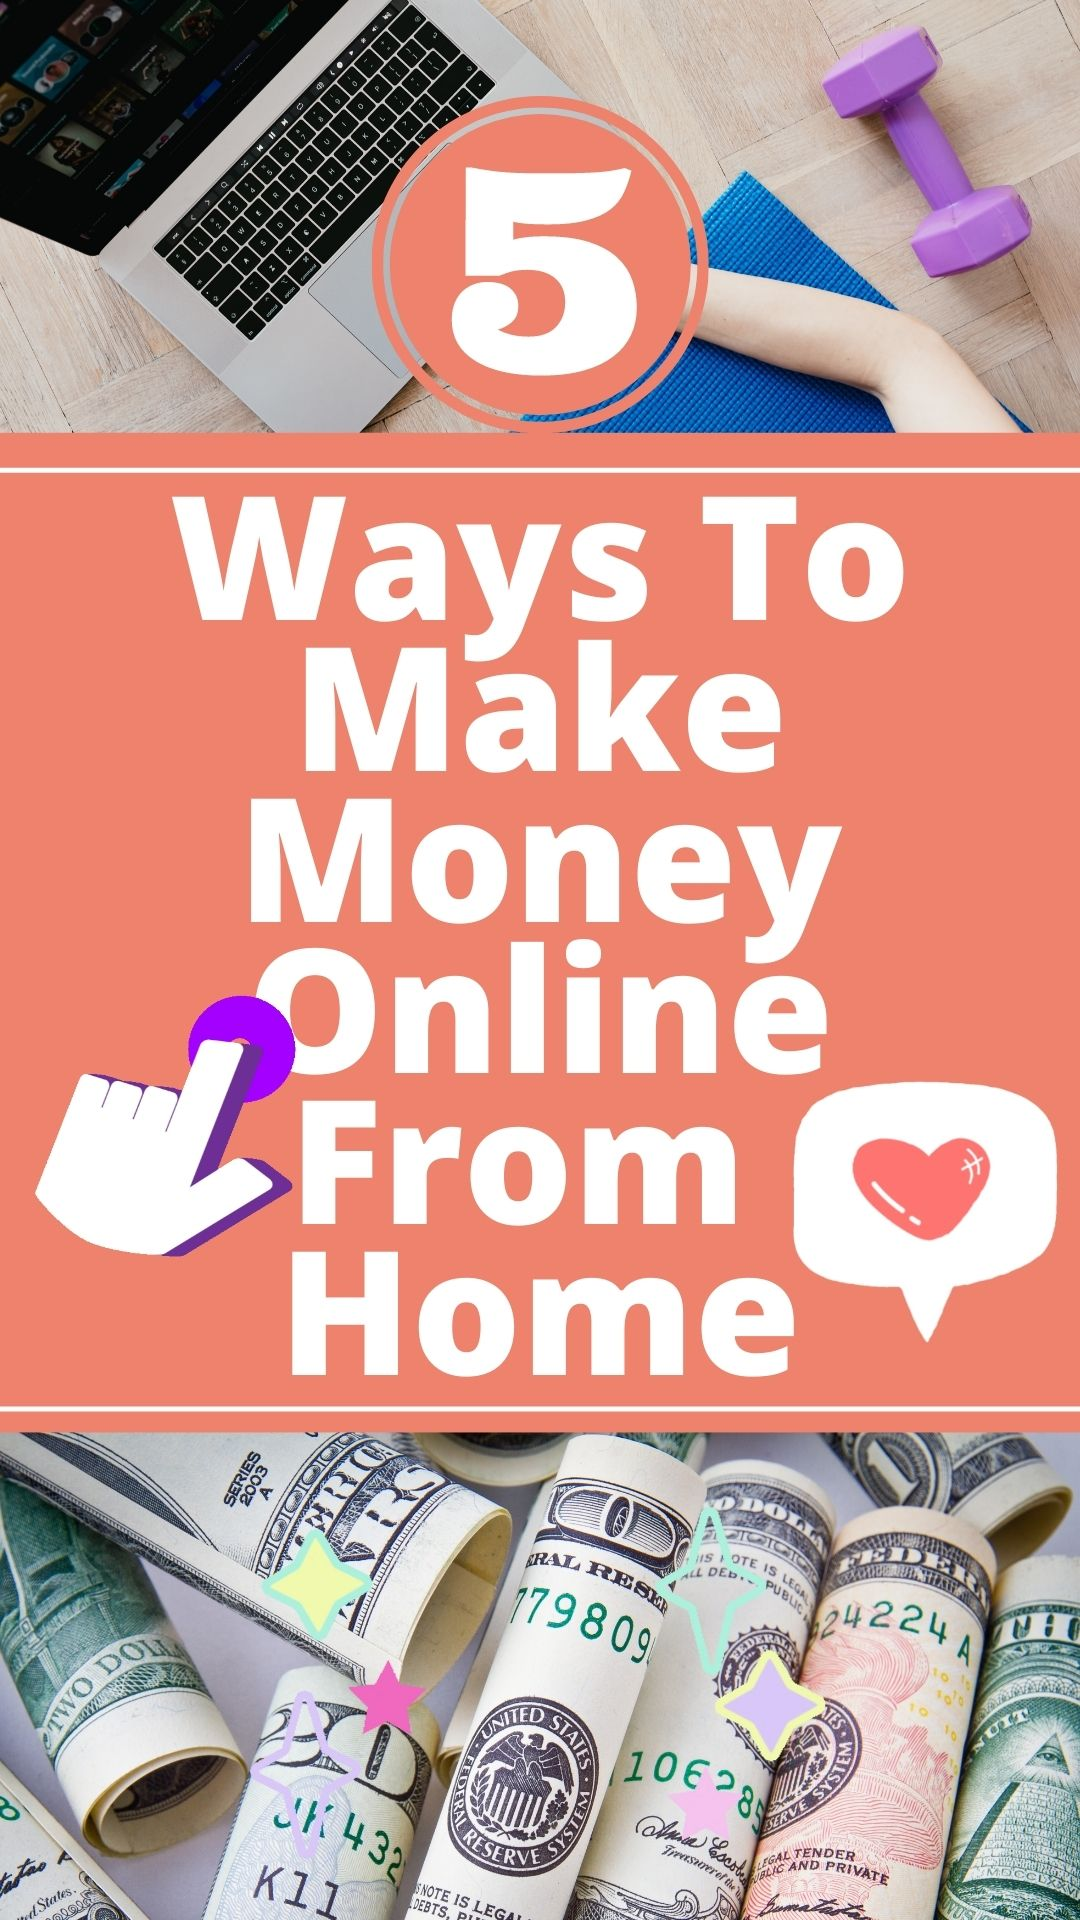 5 Ways To Make Money Online From Home